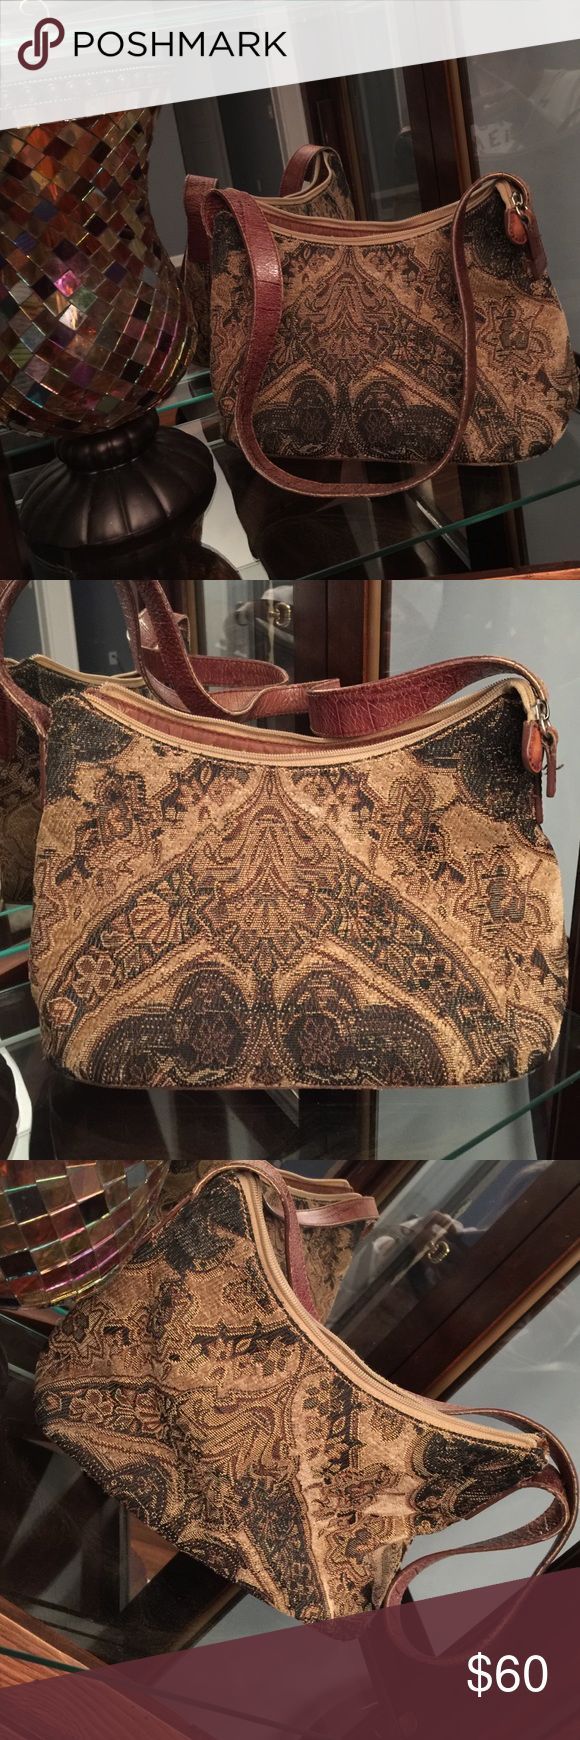 Vintage Fossil shoulder Bag This is truly THE MOST beautiful Fossil Bag I've EVER SEEN!❤️. Every stitch is designed to perfection! This has been so well taken care of💞. Must see and Feel to appreciate🎀. Only stain is on inside shown in last picture. Rustic colors Fossil Bags